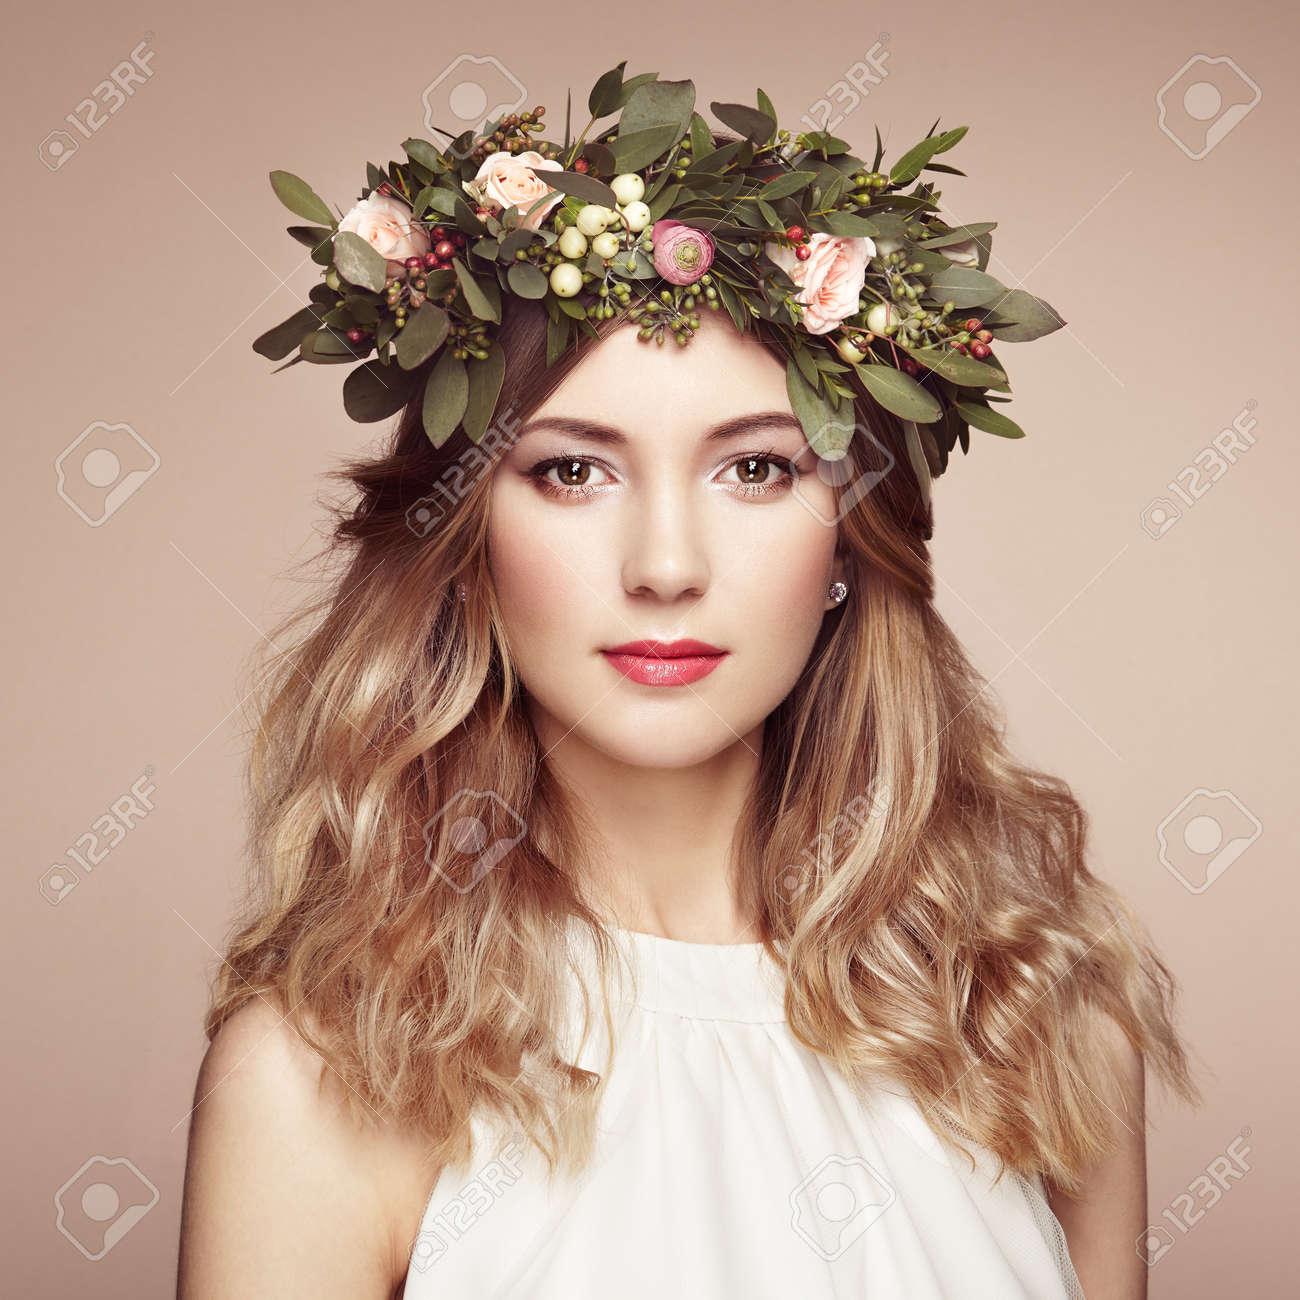 Beautiful blonde woman with flower wreath on her head. Beauty girl with flowers hairstyle. Perfect makeup. Beauty fashion. Spring woman - 54978512